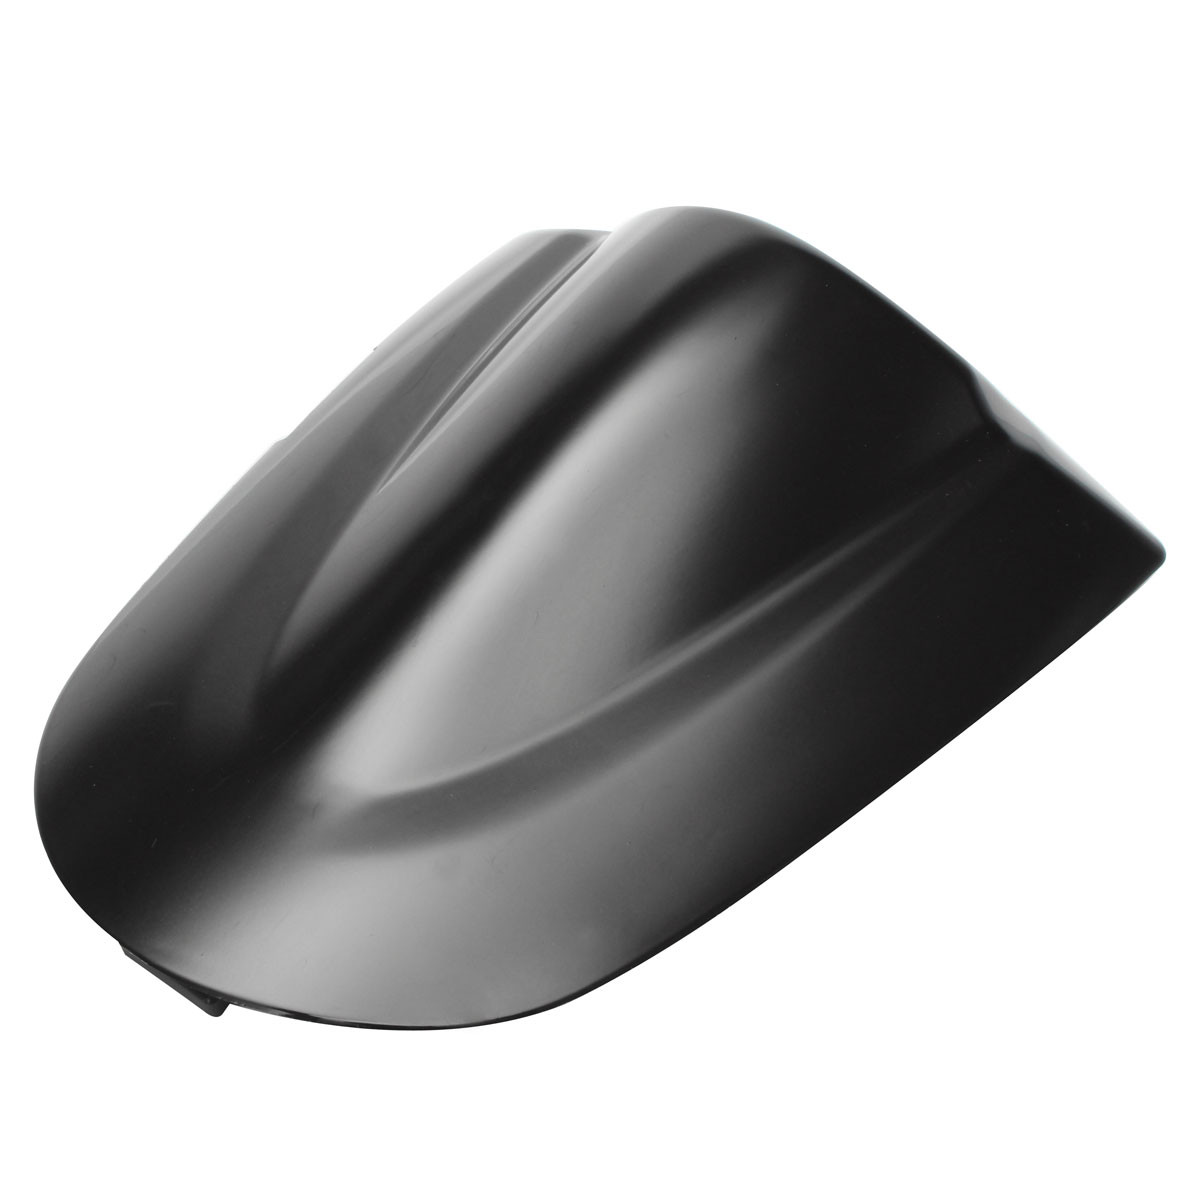 Pillion Rear Seat Cowl Cover For Suzuki K6 GSXR600 GSXR